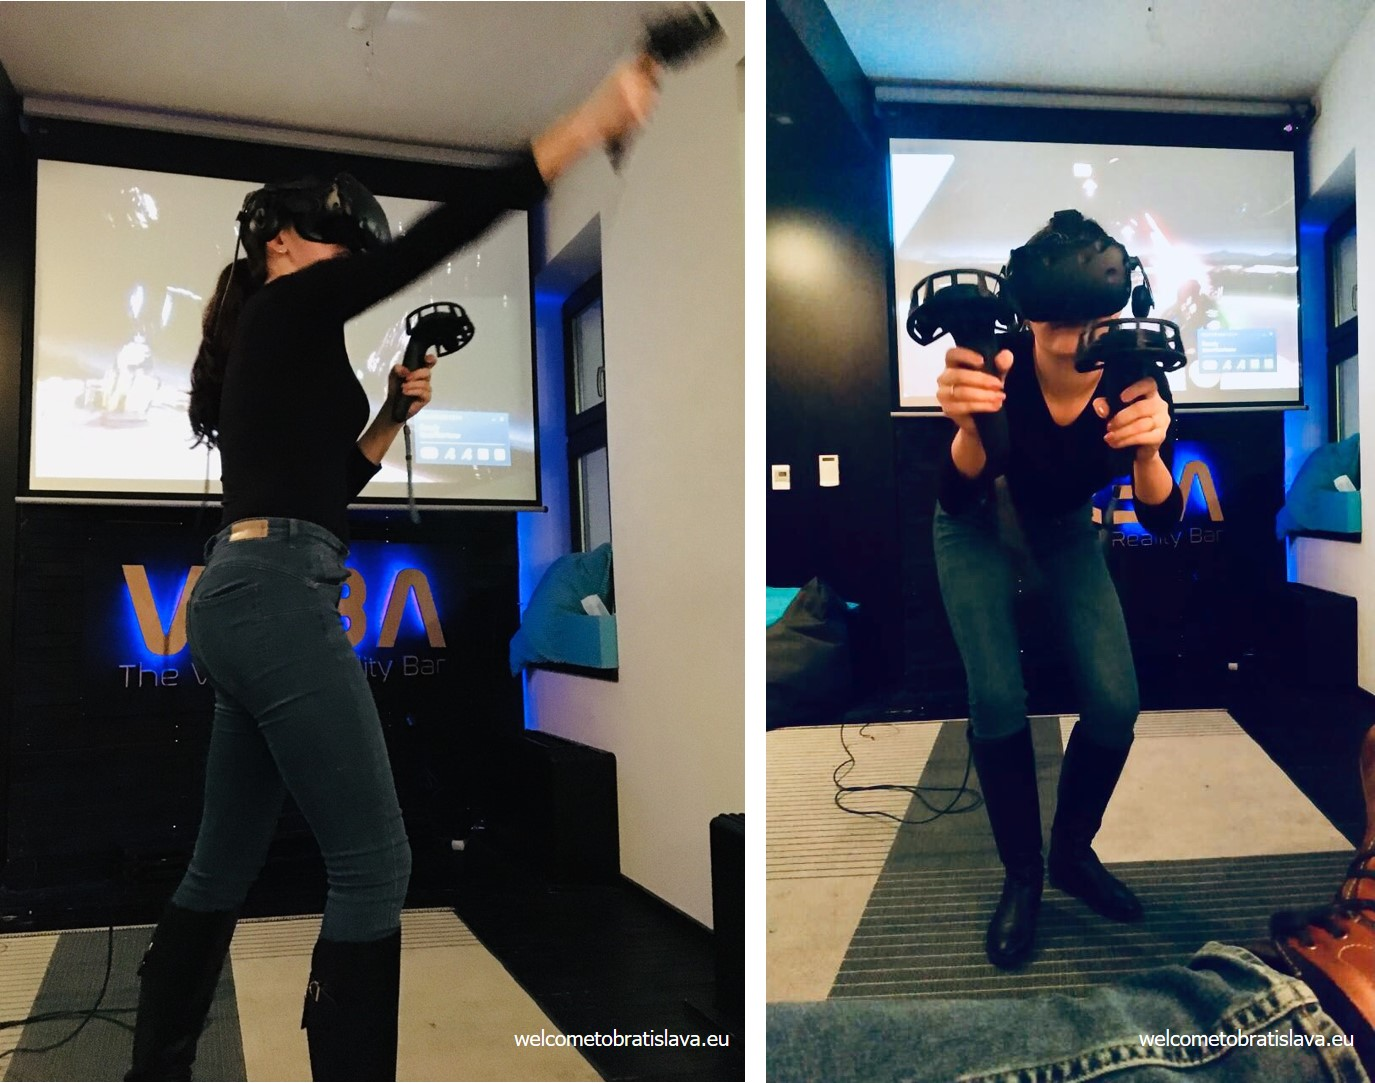 virtual reality places in Bratislava